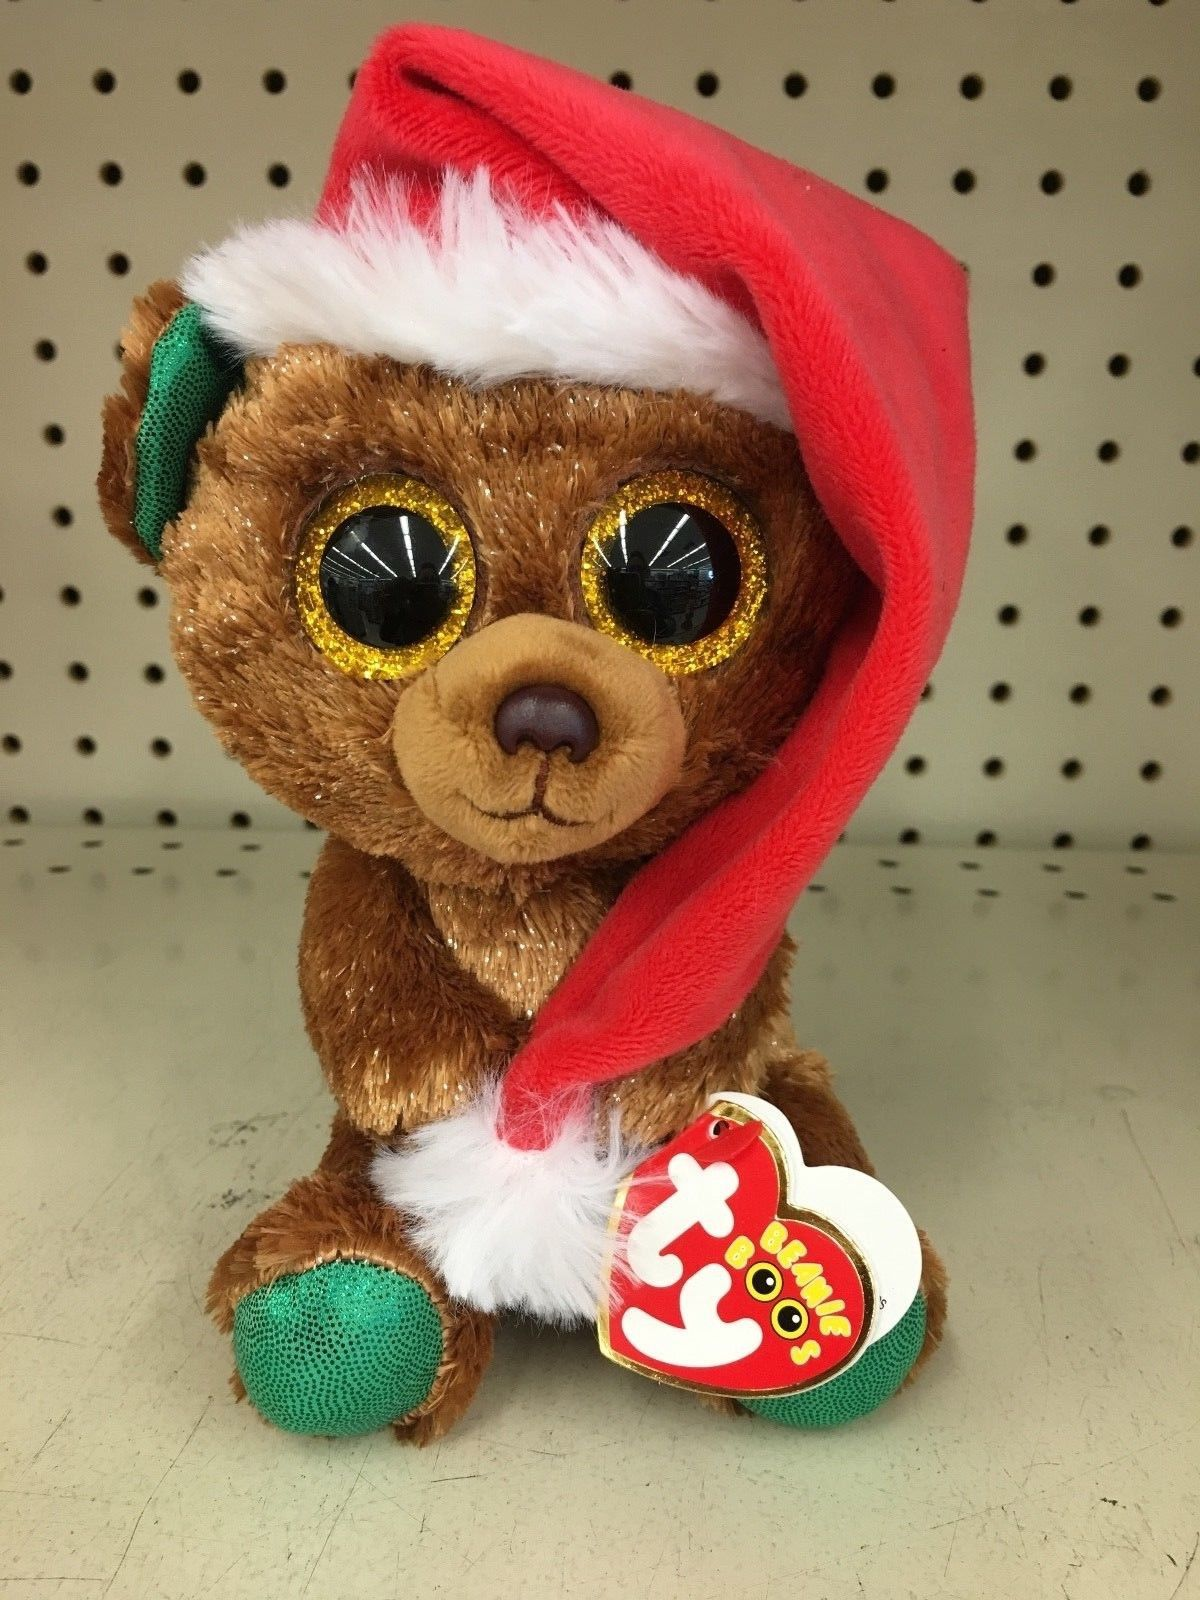 bcee94b8977 Current 438  Ty Beanie Boo Nicholas The Christmas Bear 6 Mwmt-In Hand In  Us! -  BUY IT NOW ONLY   11.99 on  eBay  current  beanie  nicholas   christmas